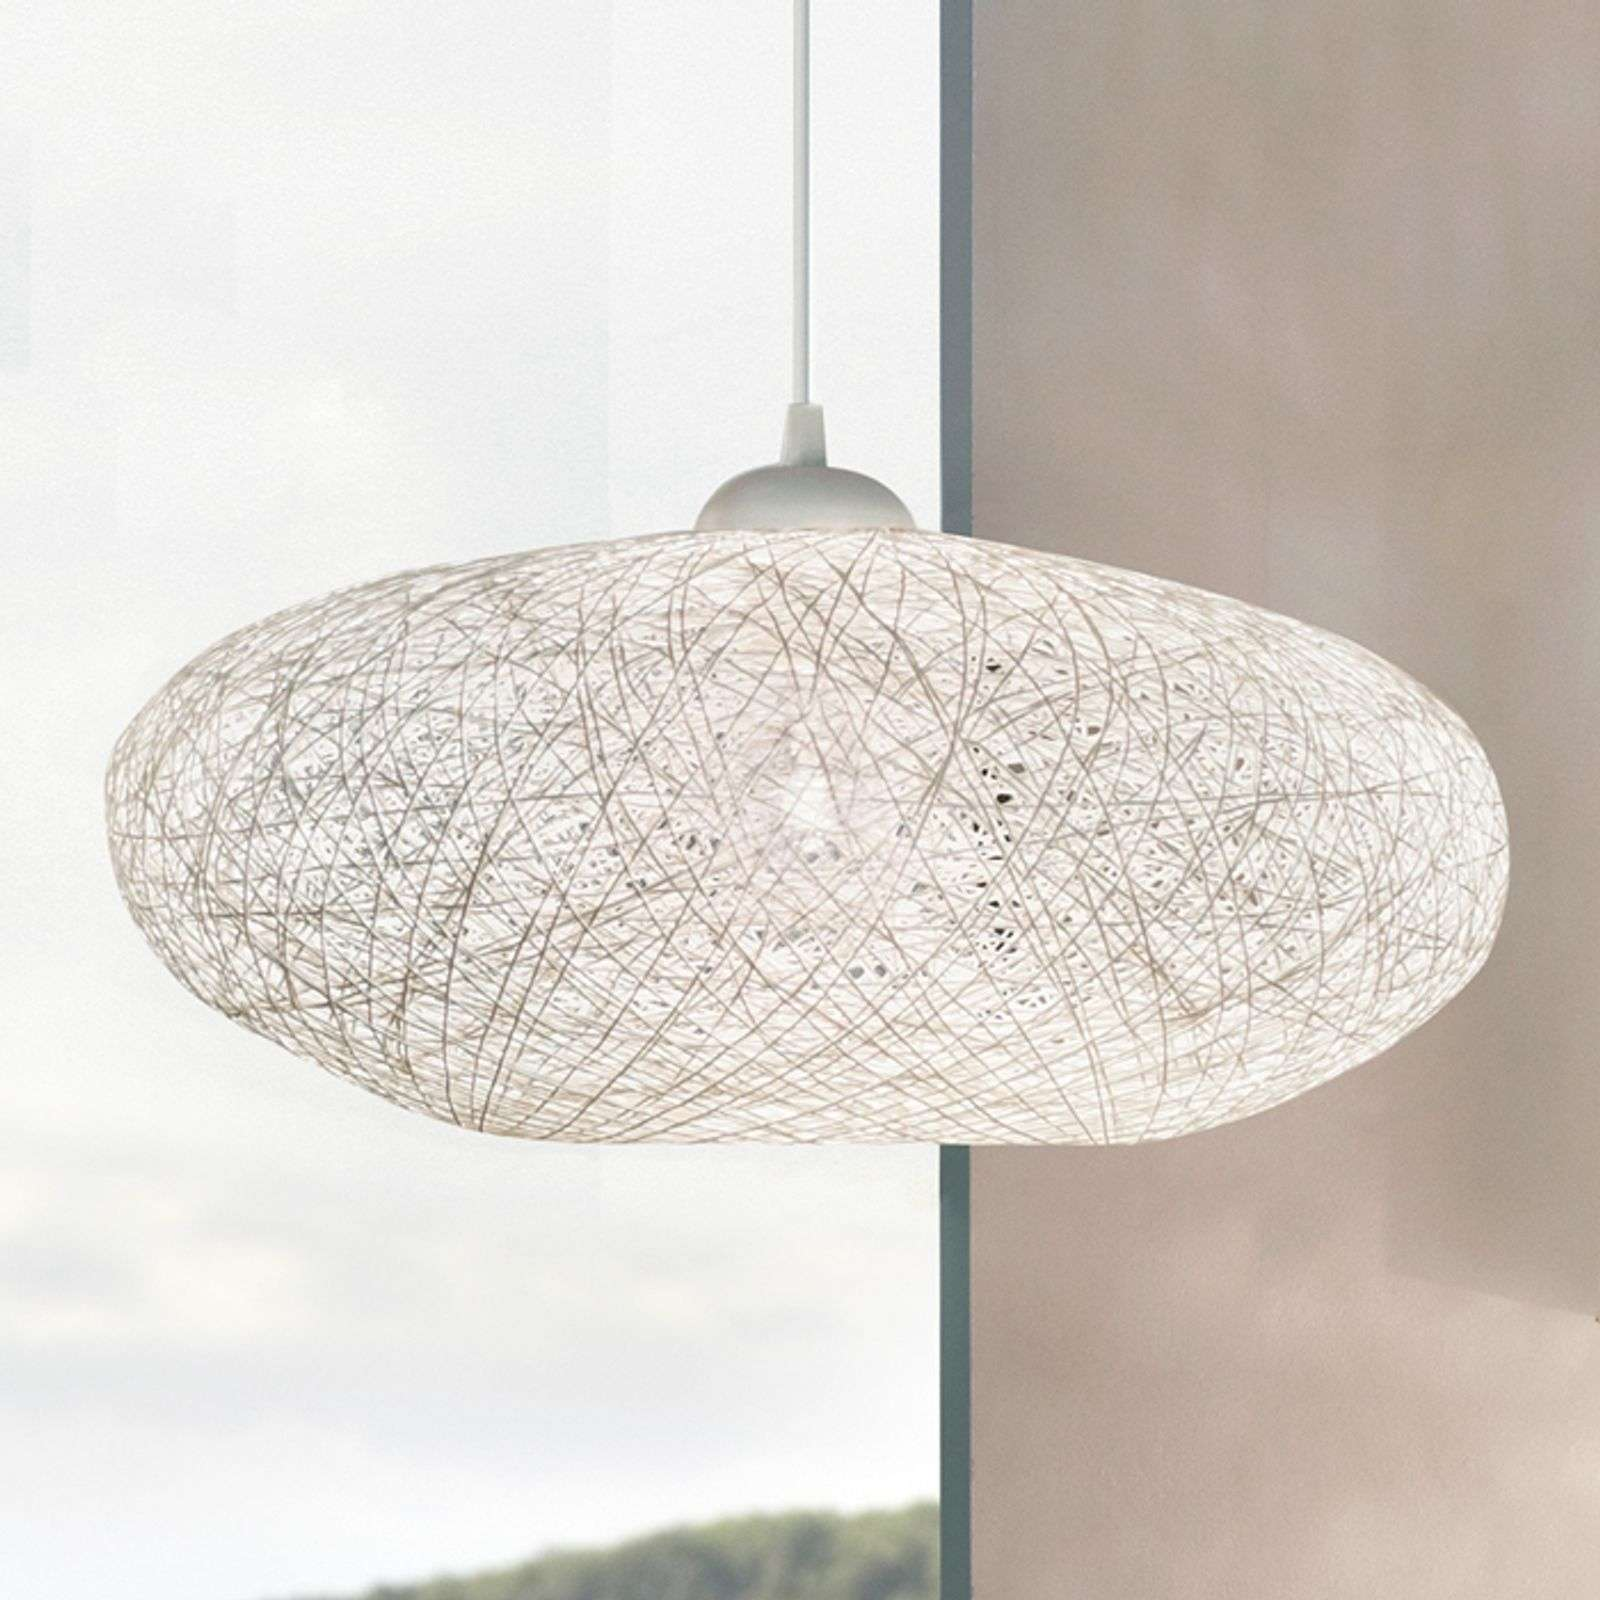 Suspension textile Campilo, blanche